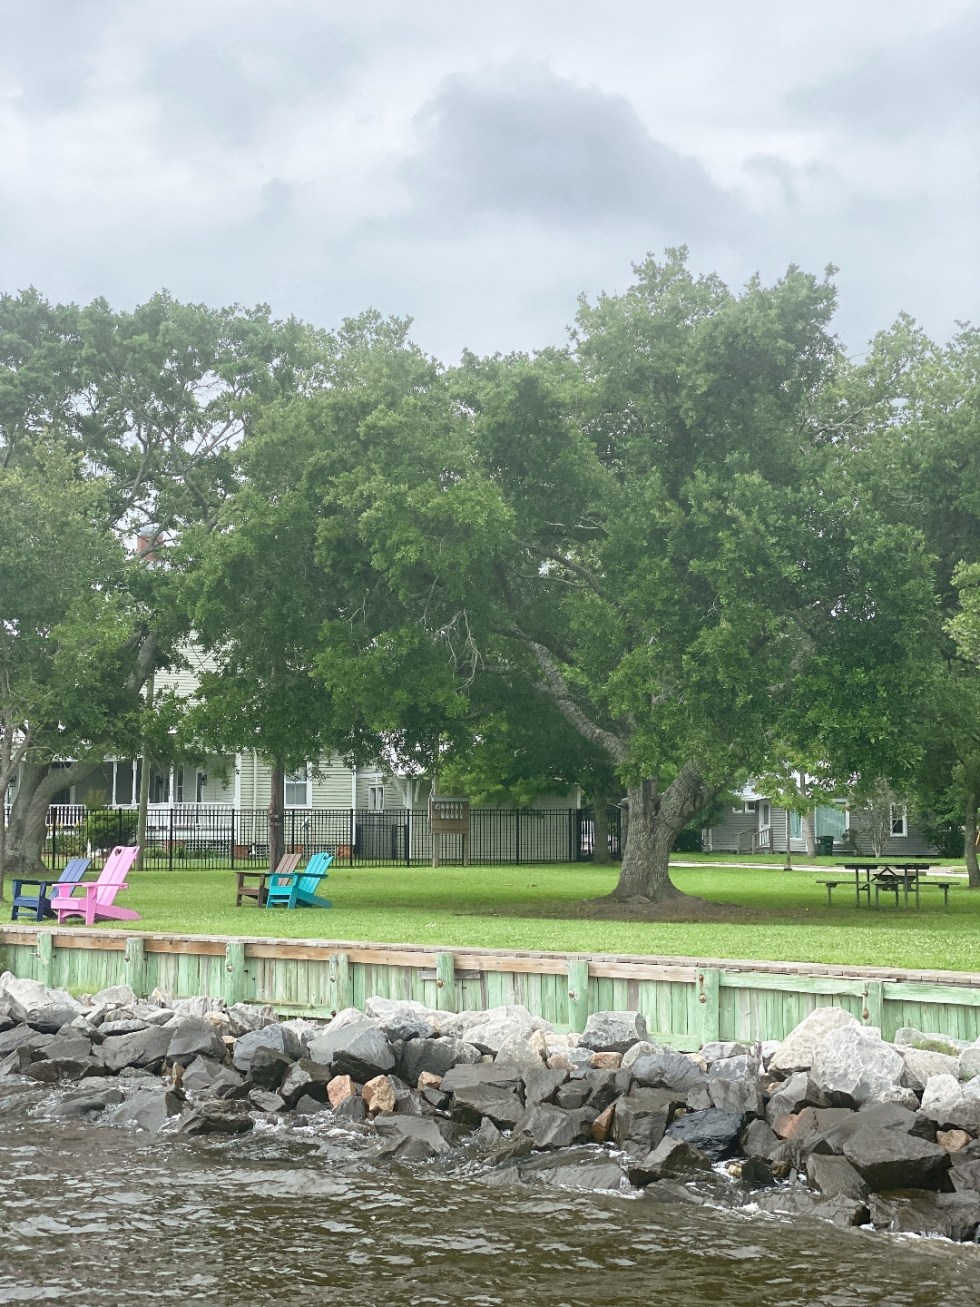 What to Do in Oriental, NC - I'm Fixin' To - @imfixintoblog | Things to do in Oriental NC by popular NC travel blog, I'm Fixin' To: image of some lounge chairs resting under some tall trees next to the ocean.